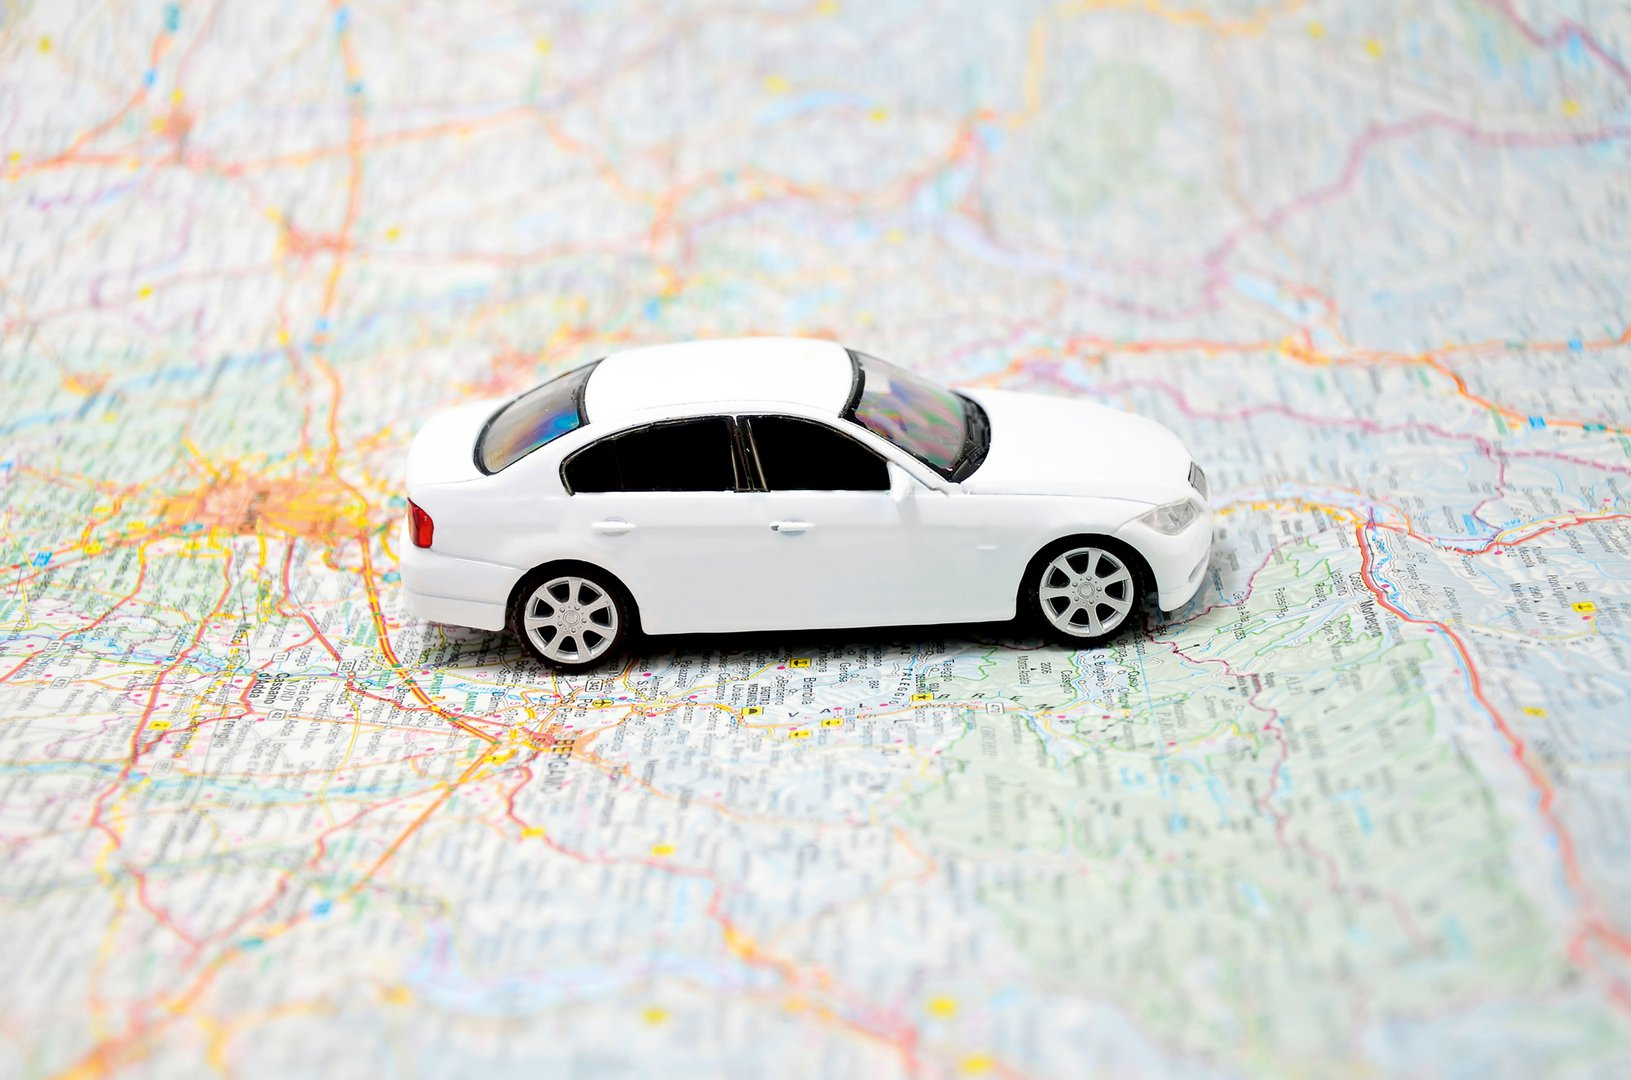 Recalculating Your Way Across Europe: GPS in Foreign Lands - Driving